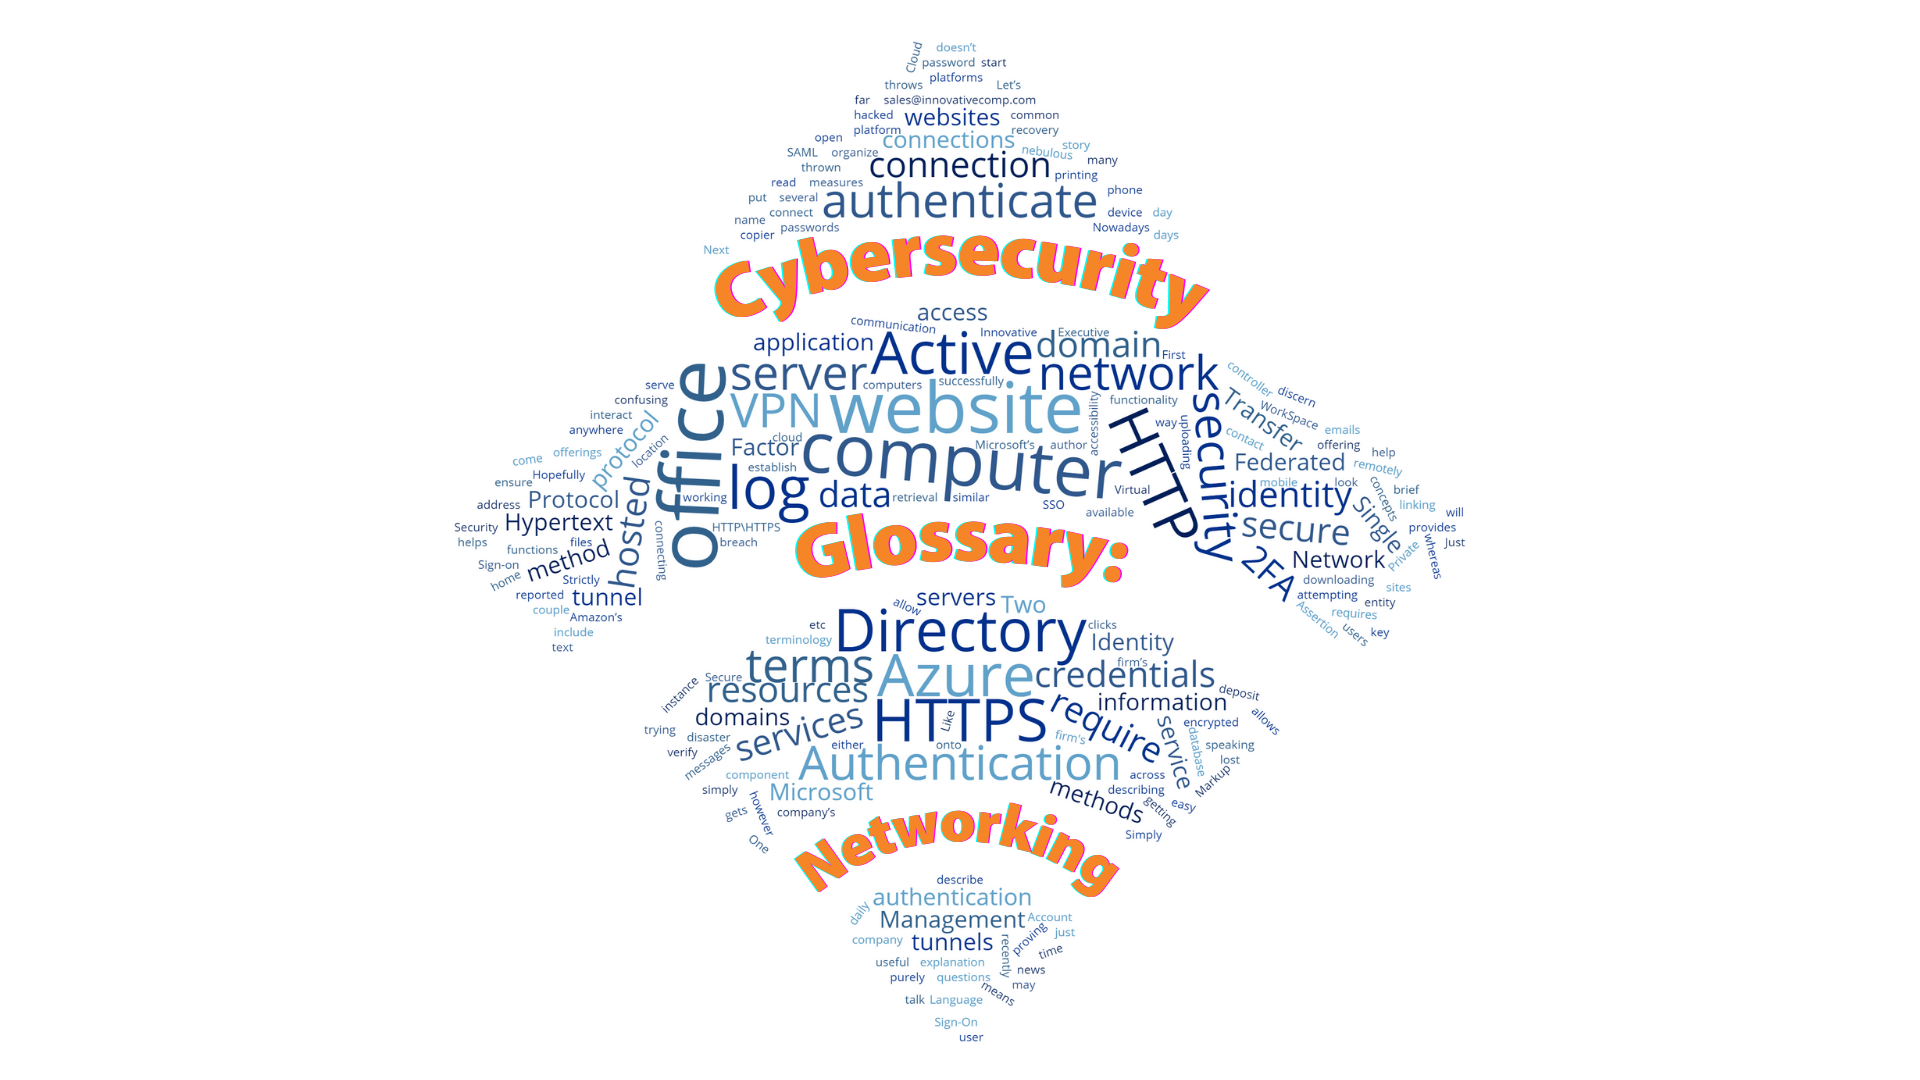 Cybersecurity Glossary Networking